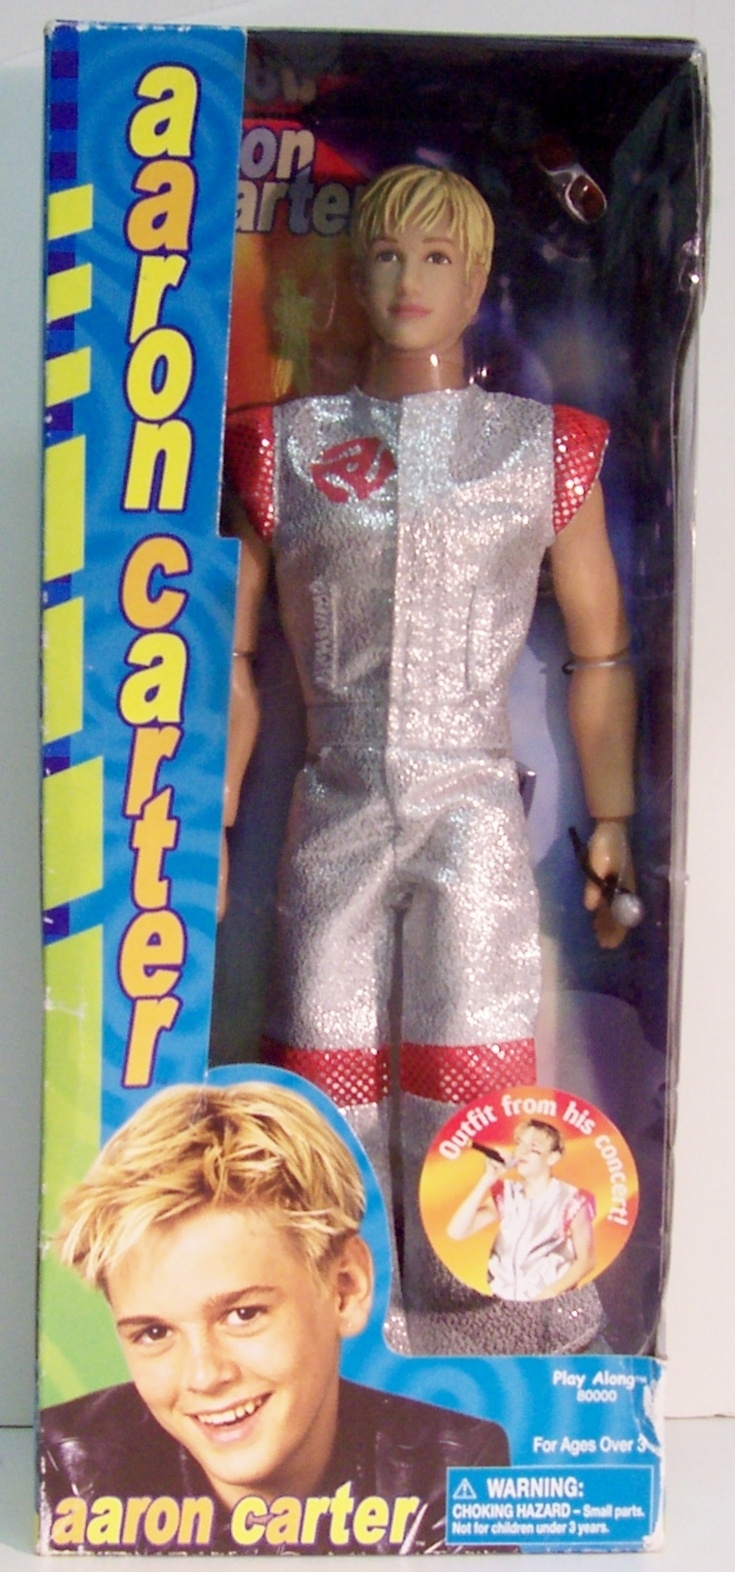 """Aaron Carter 12"""" Doll by Play Along, 2001"""